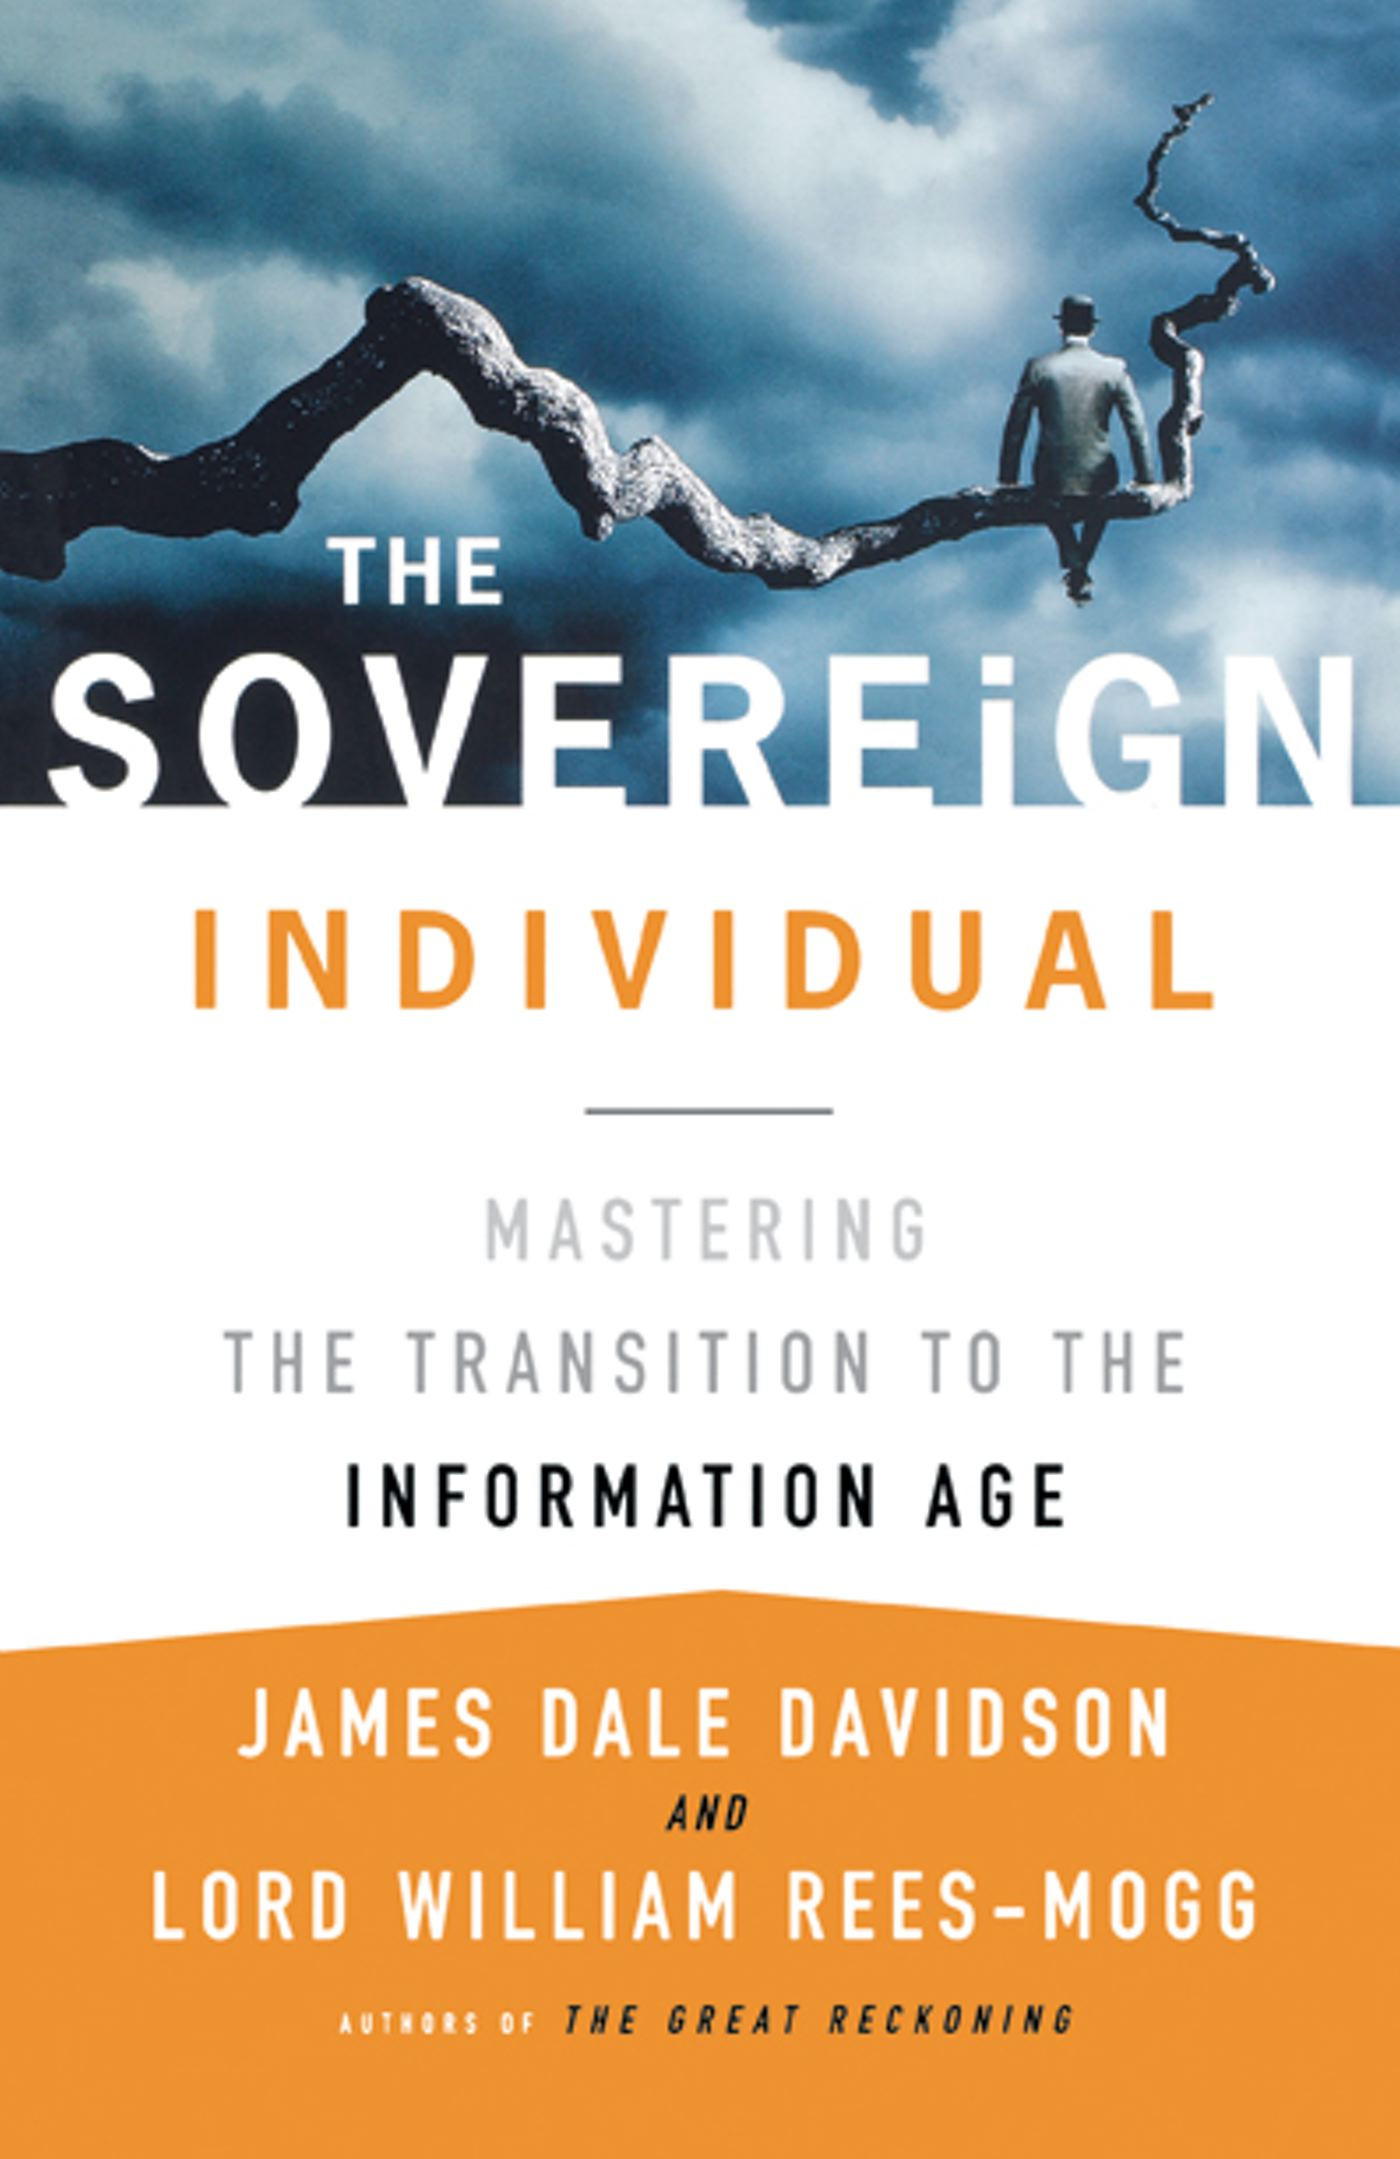 The Sovereign Individual  Book By James Dale Davidson, Lord William  Reesmogg  Official Publisher Page  Simon & Schuster